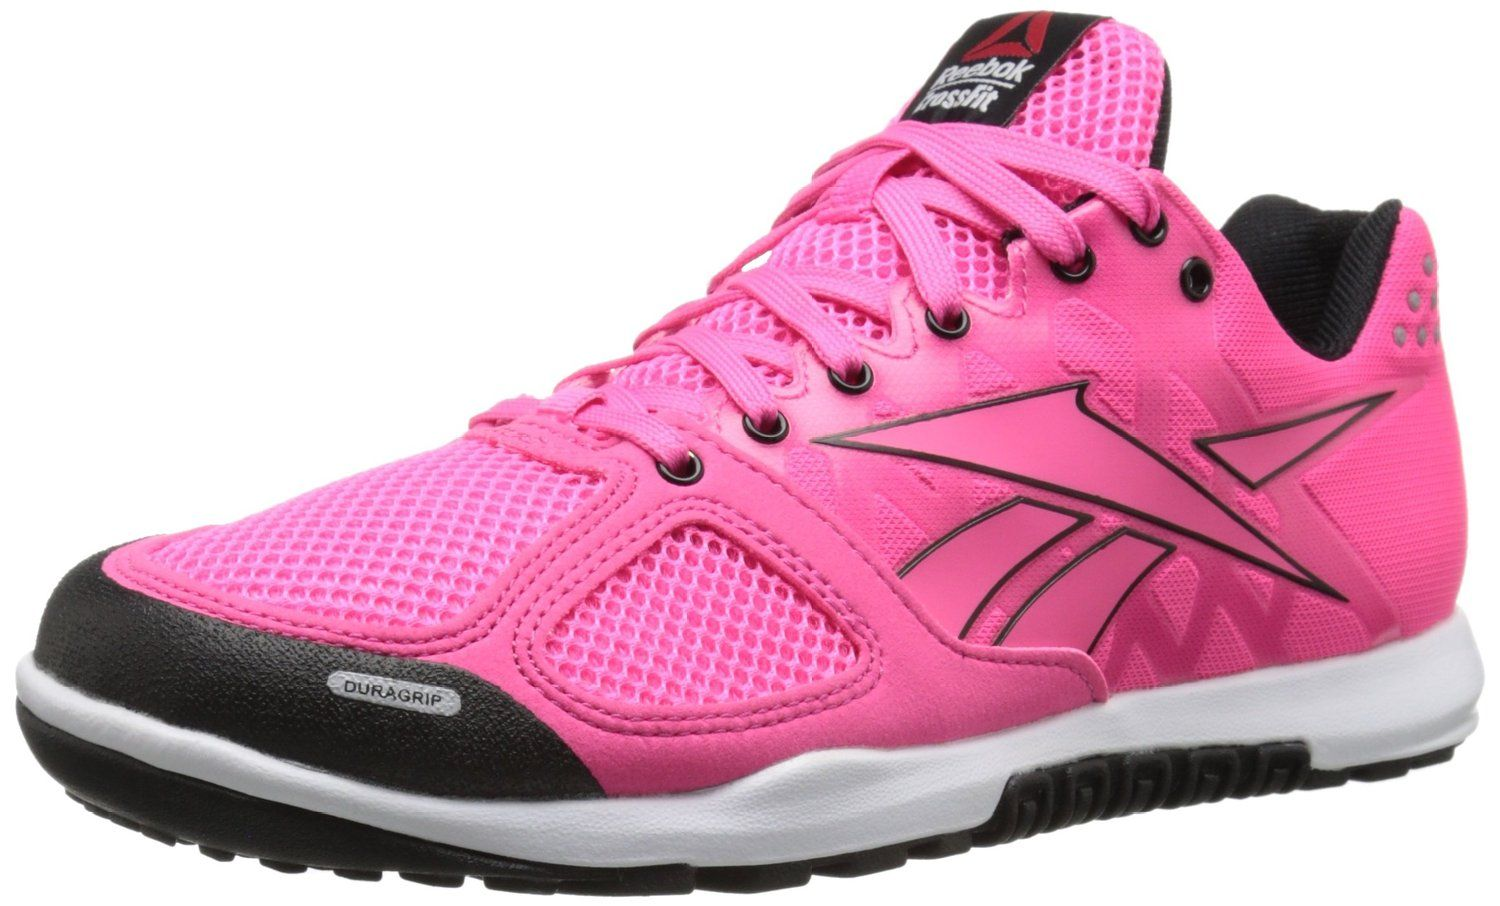 938aec0e5cd81 Amazon.com: Reebok Women's Crossfit Nano 2.0 Cross-Training Shoe ...